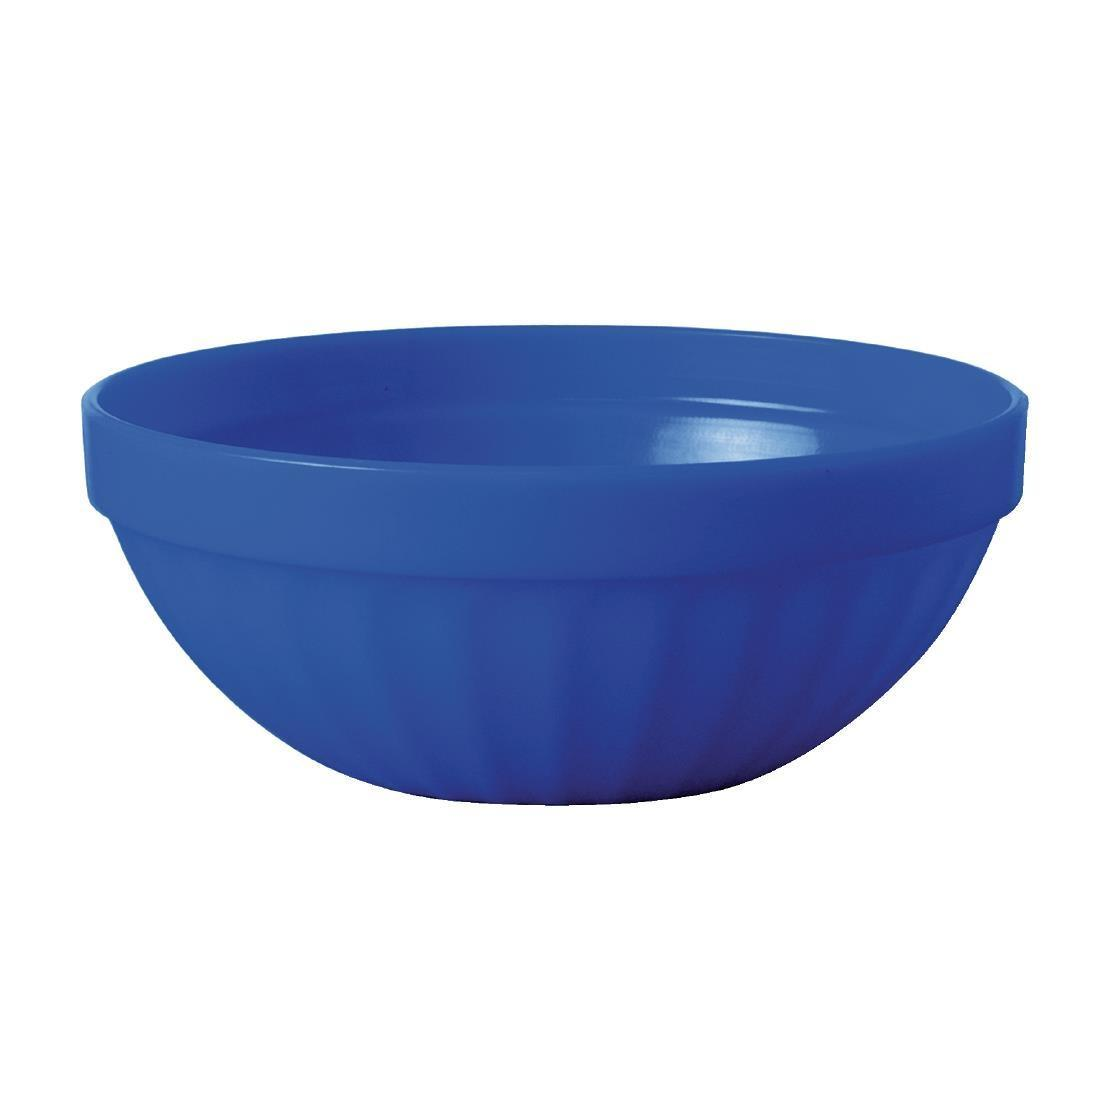 Kristallon Polycarbonate Bowls Blue 102mm - Case 12 - CE276